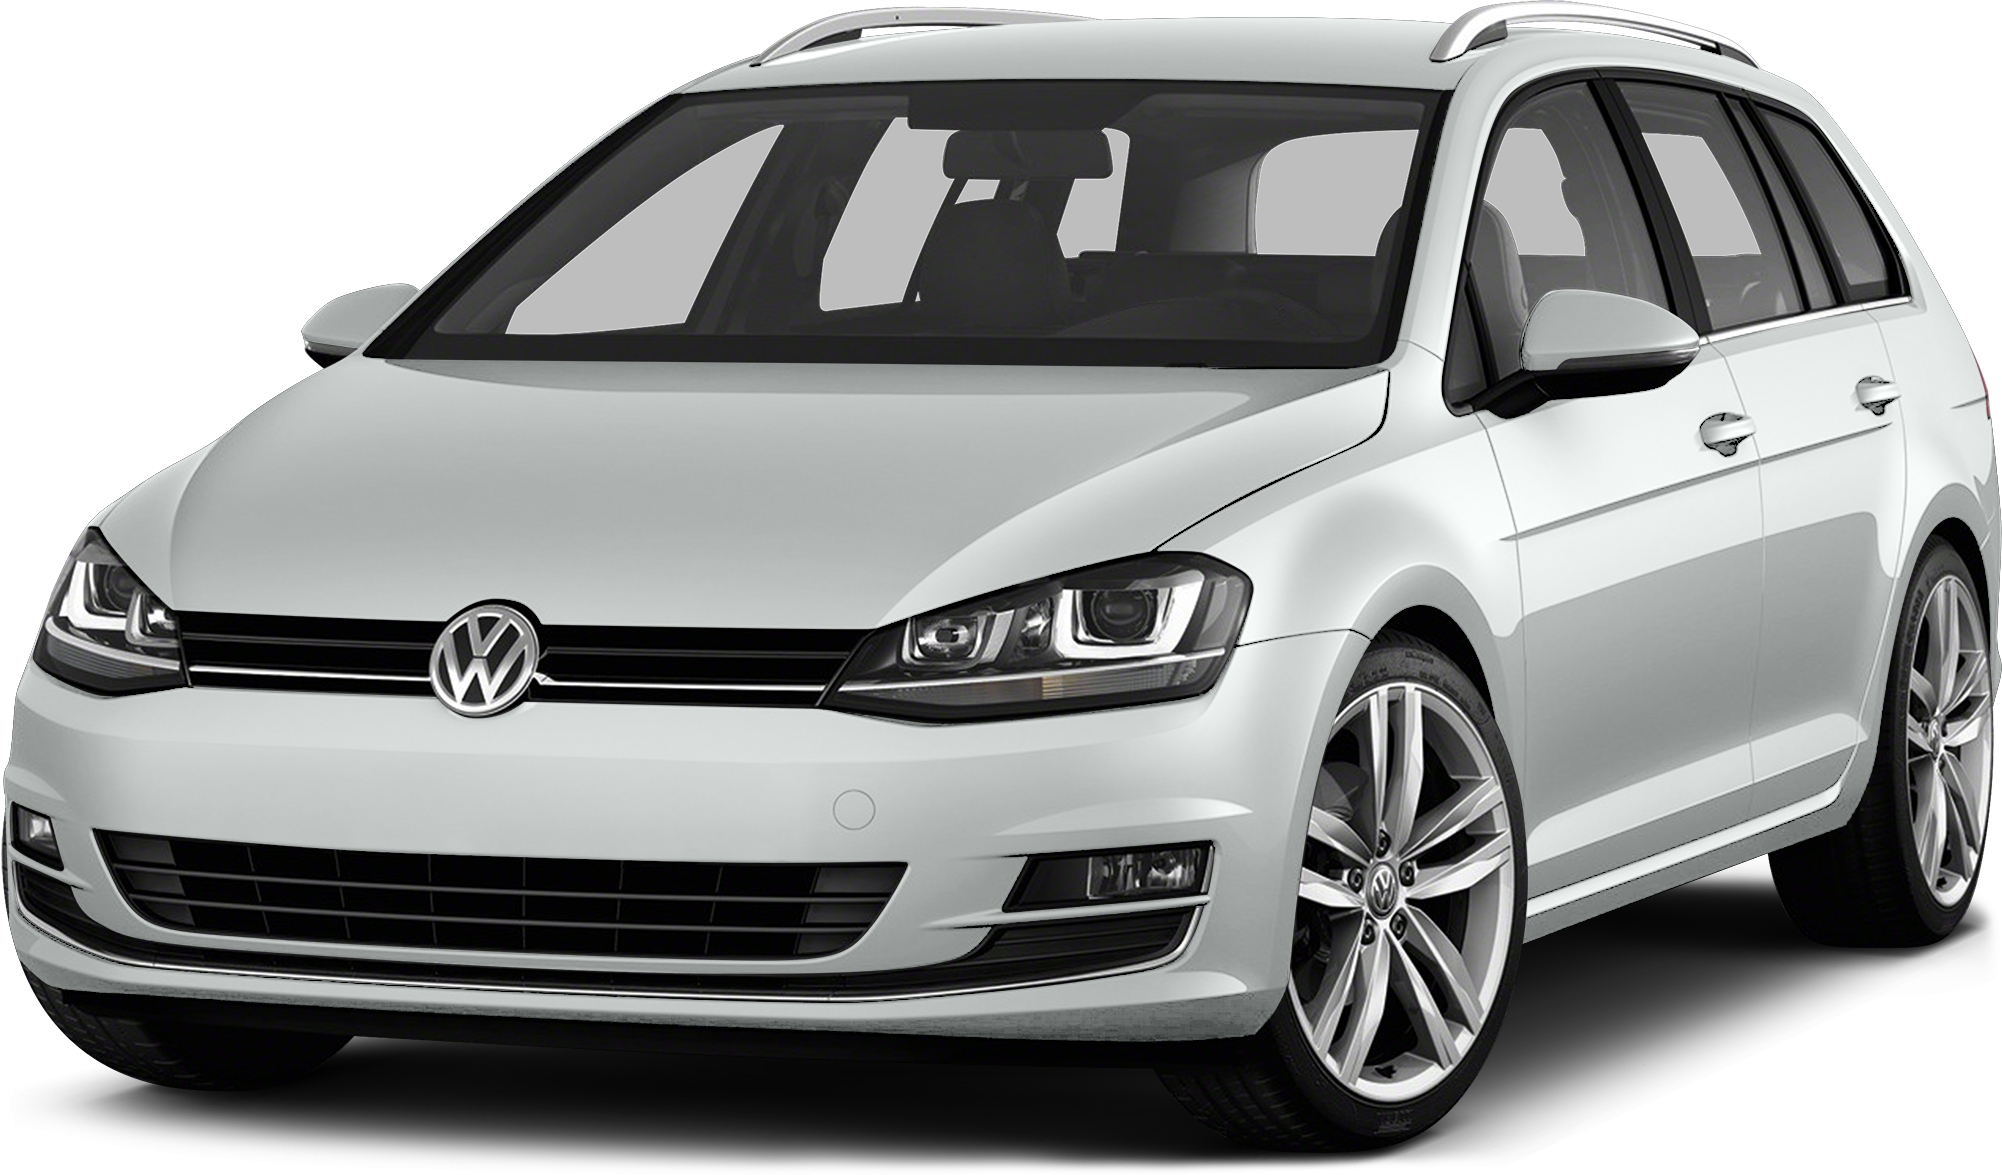 2015 volkswagen golf sportwagen tdi s east providence ri 9645085. Black Bedroom Furniture Sets. Home Design Ideas